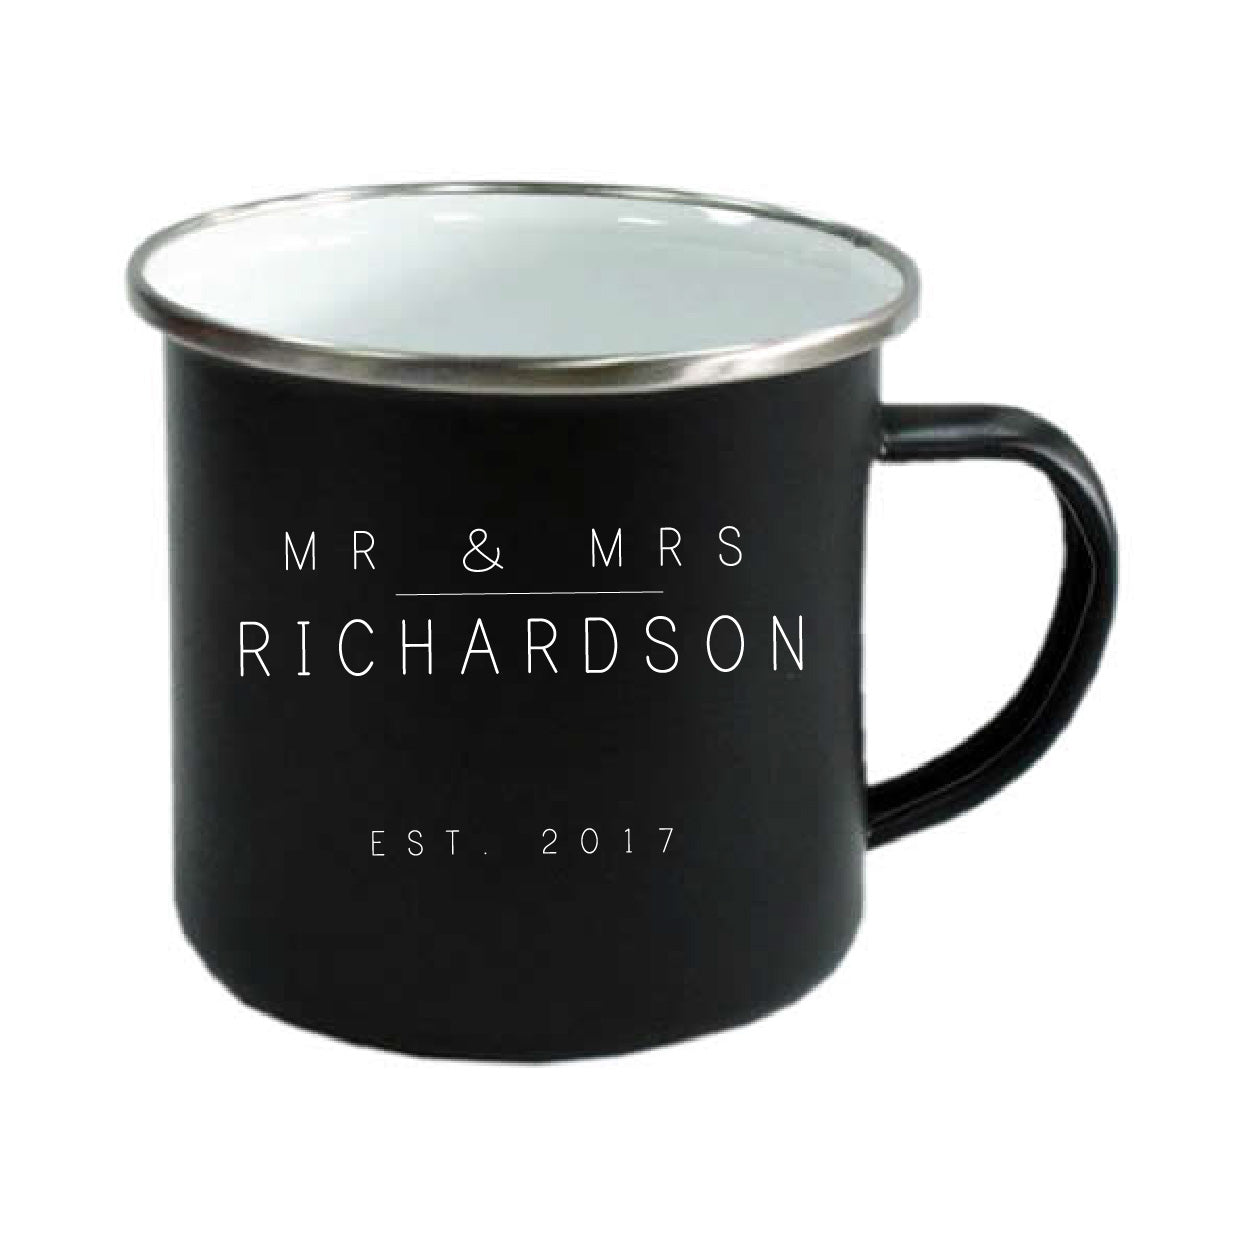 Personalised black enamel camping mug